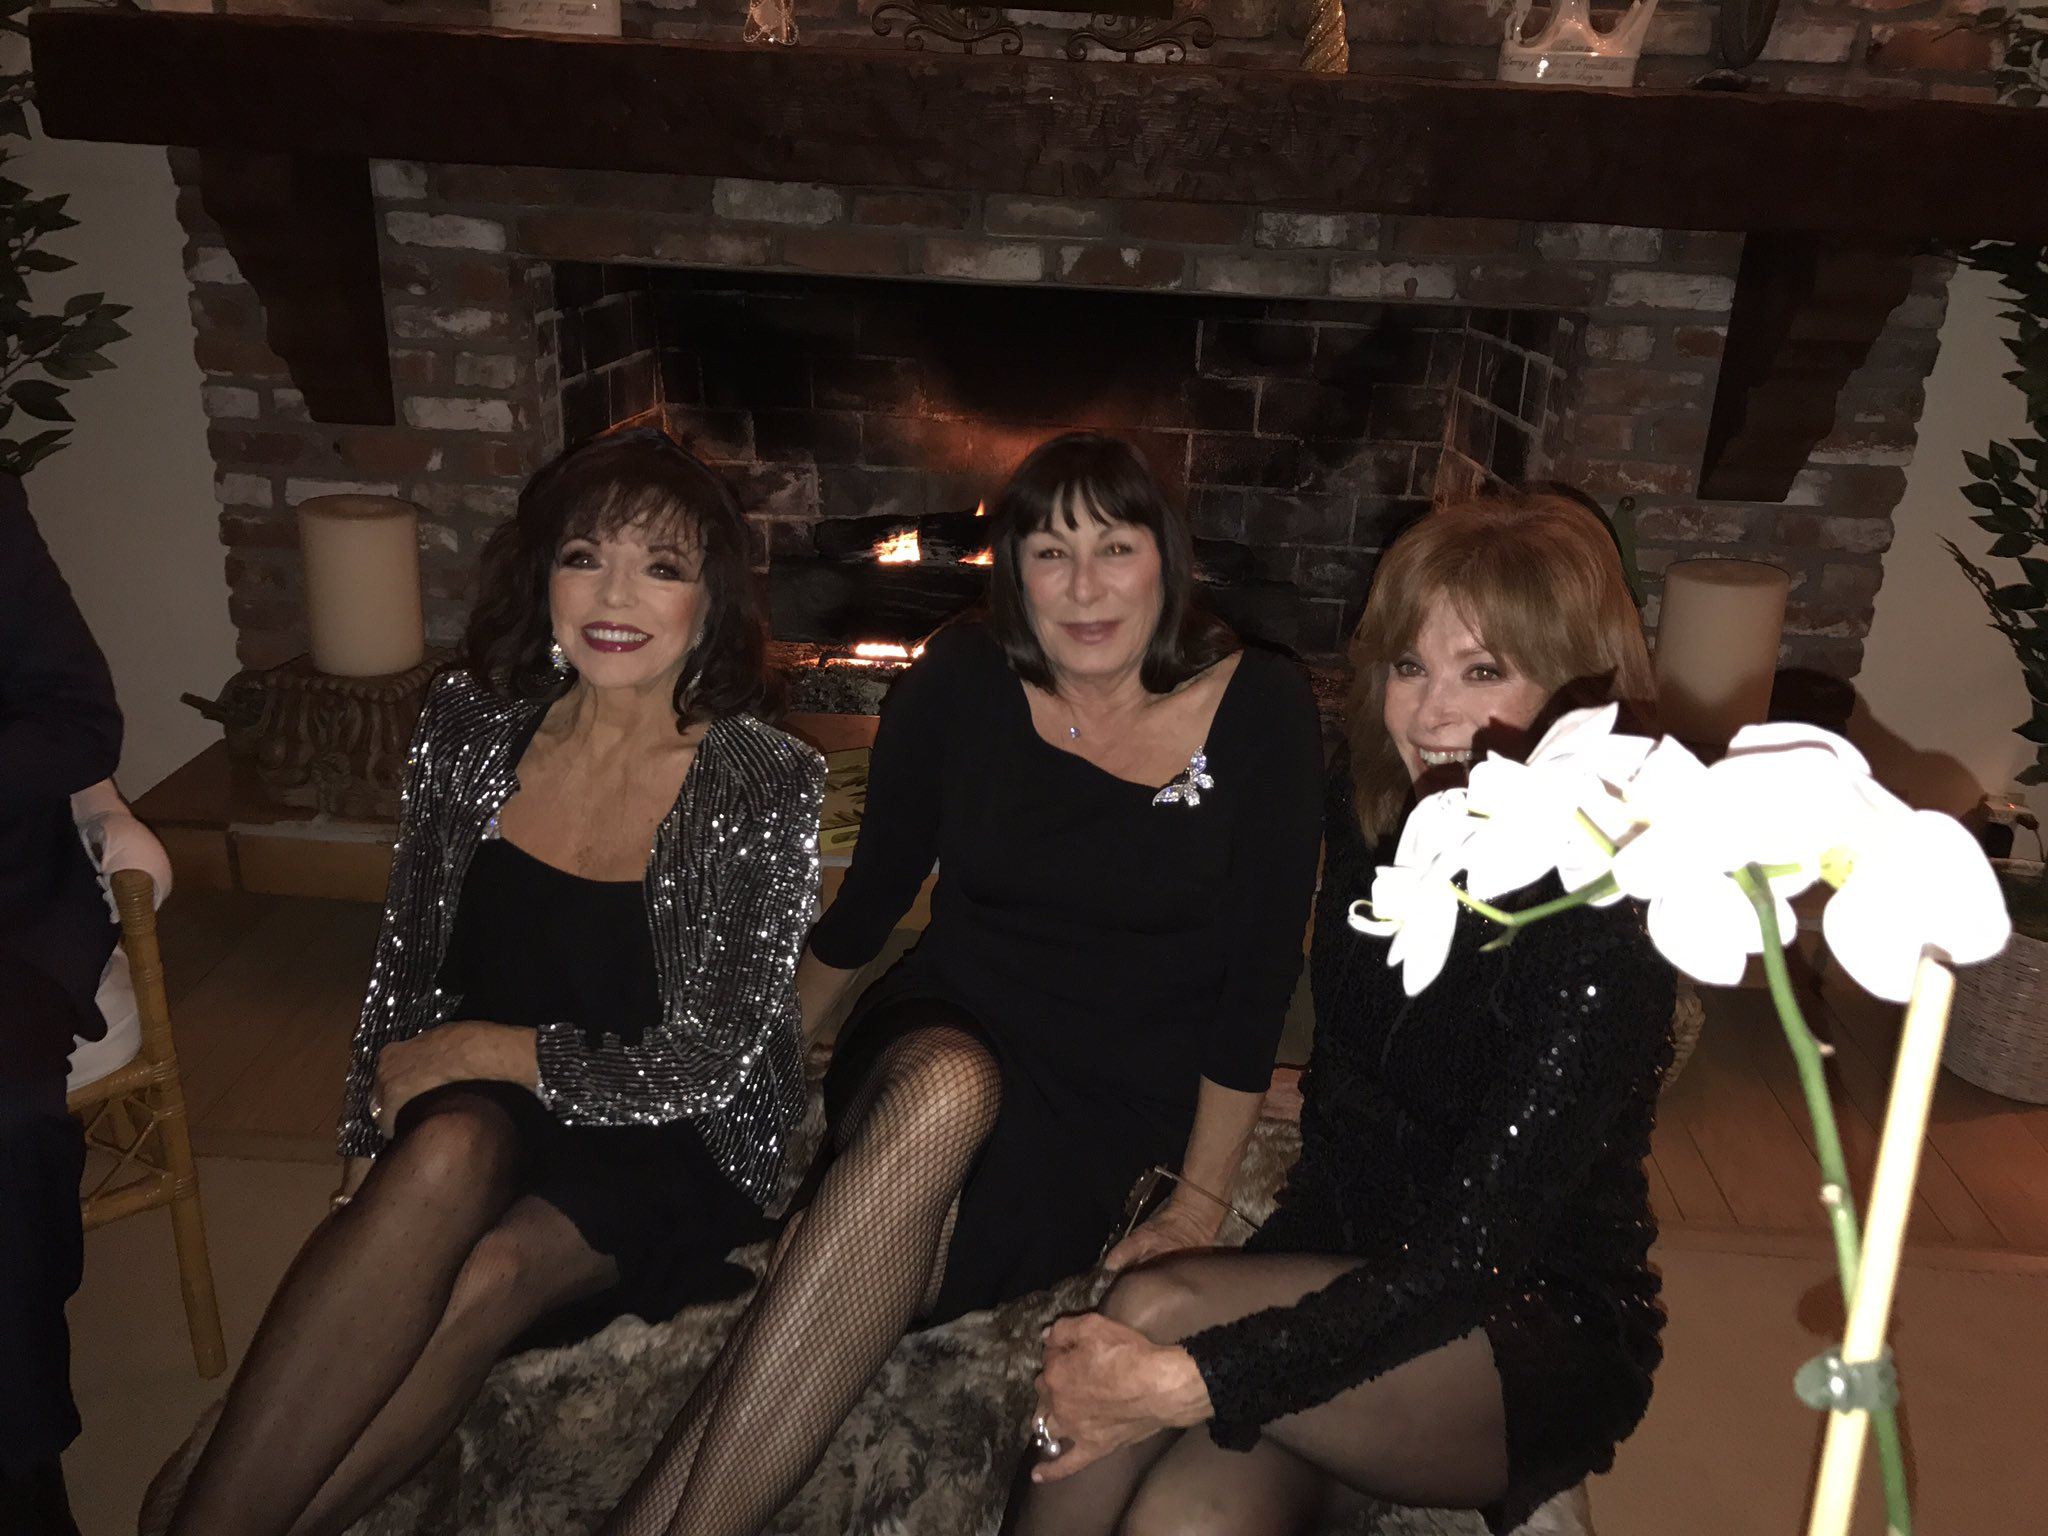 Oh @Joancollinsdbe how wonderful you, Anjelica and @Stefanie_Powers are looking this evening https://t.co/Vn8dnwJAyd